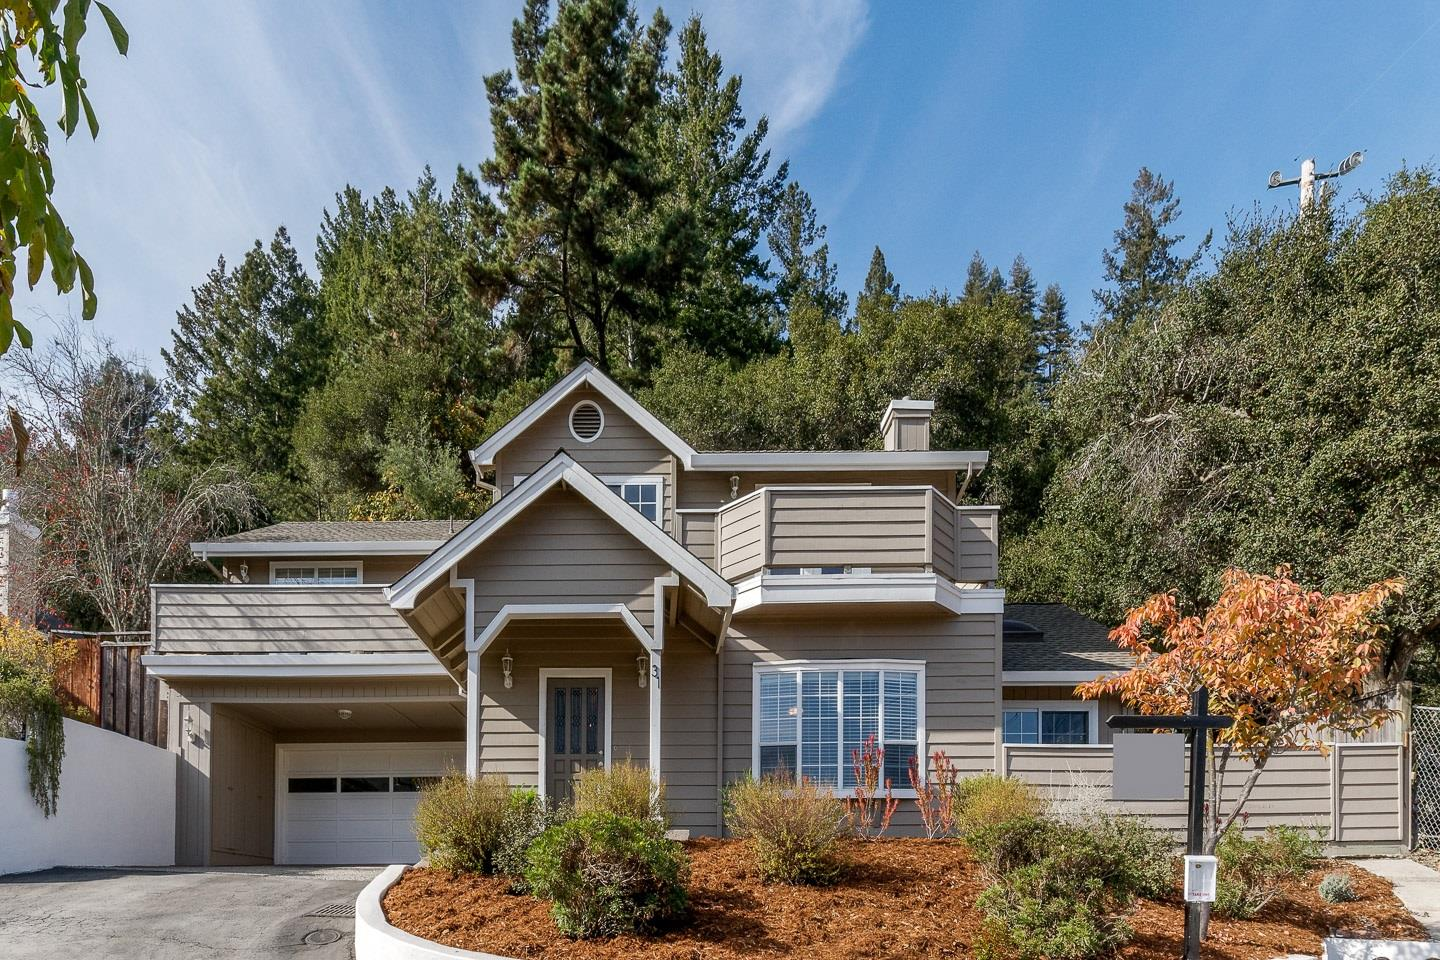 Detail Gallery Image 1 of 1 For 31 Dunslee Way, Scotts Valley, CA, 95066 - 3 Beds | 2/1 Baths